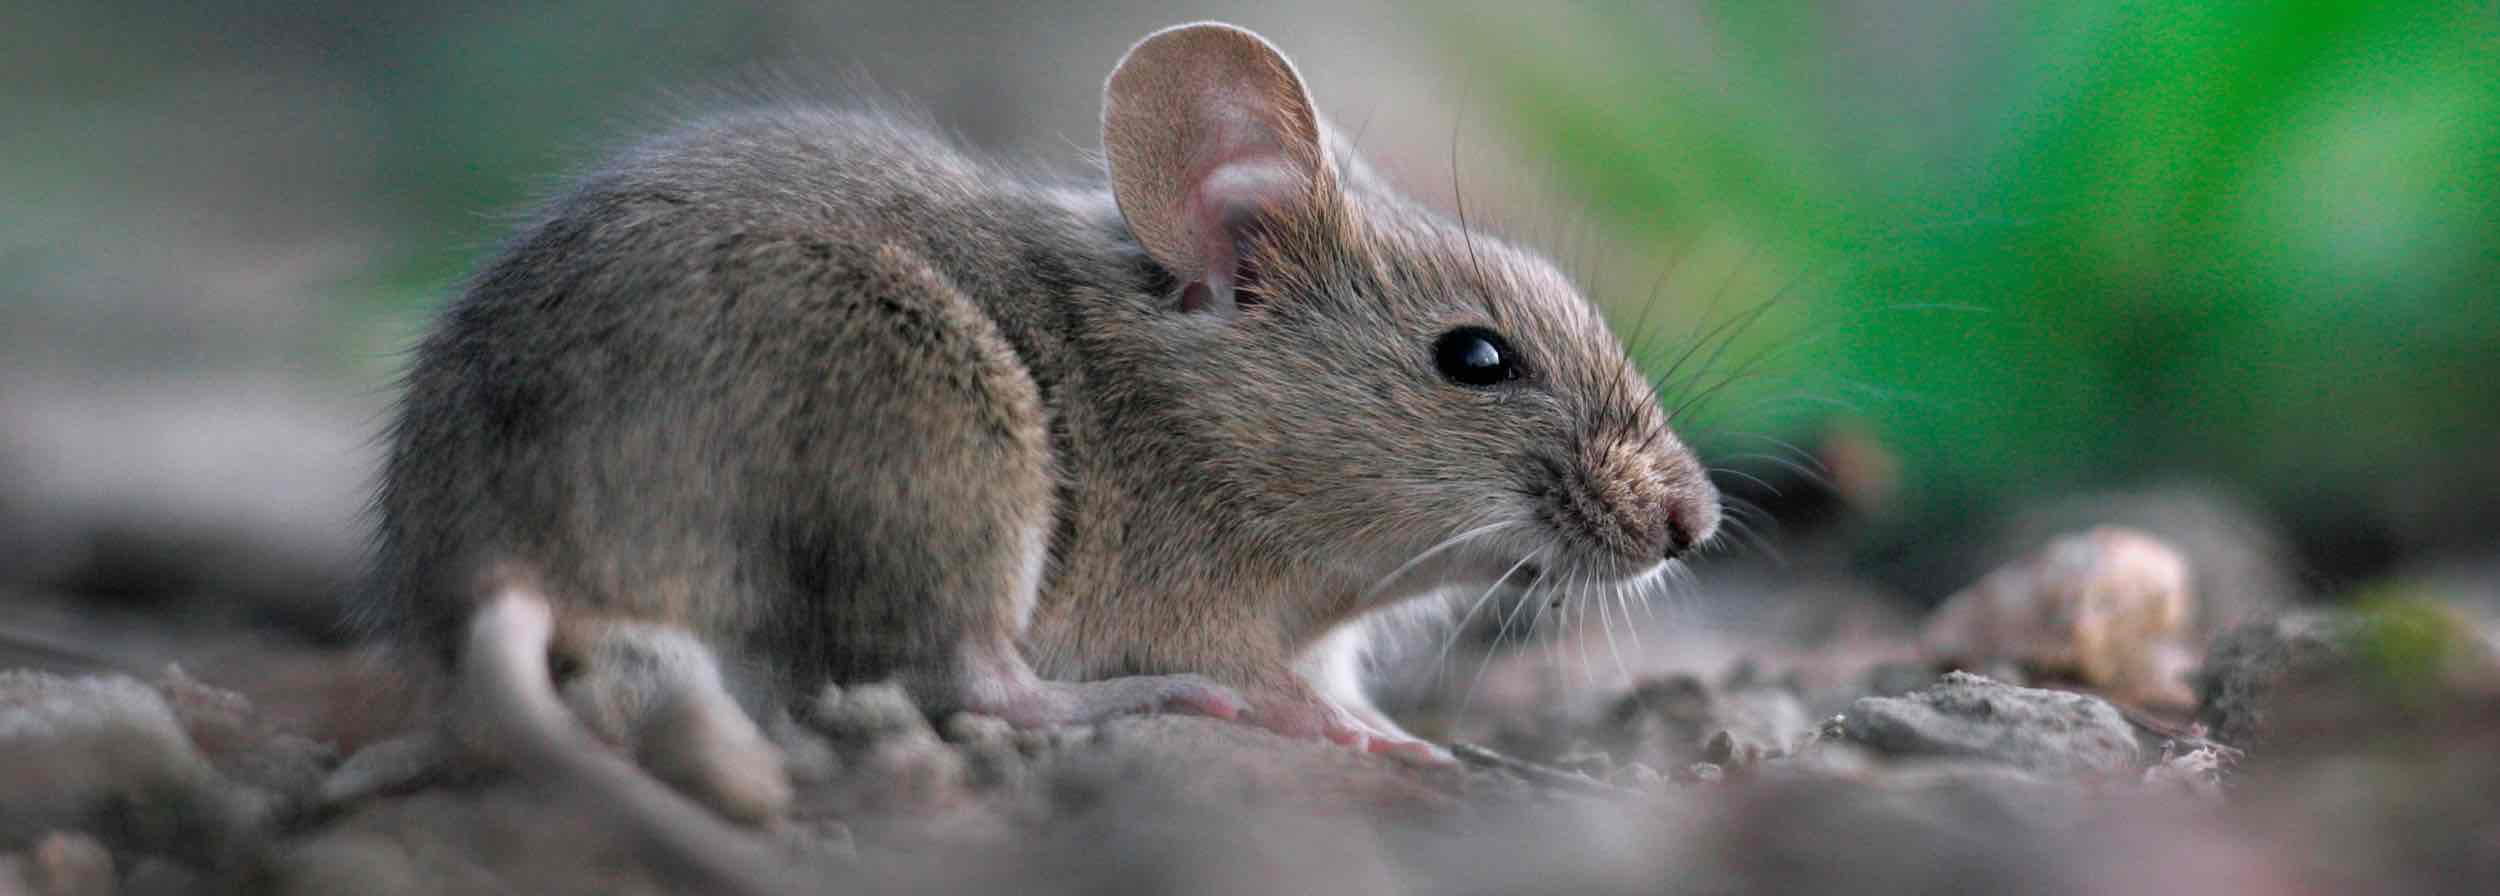 Mouse Amazing Facts